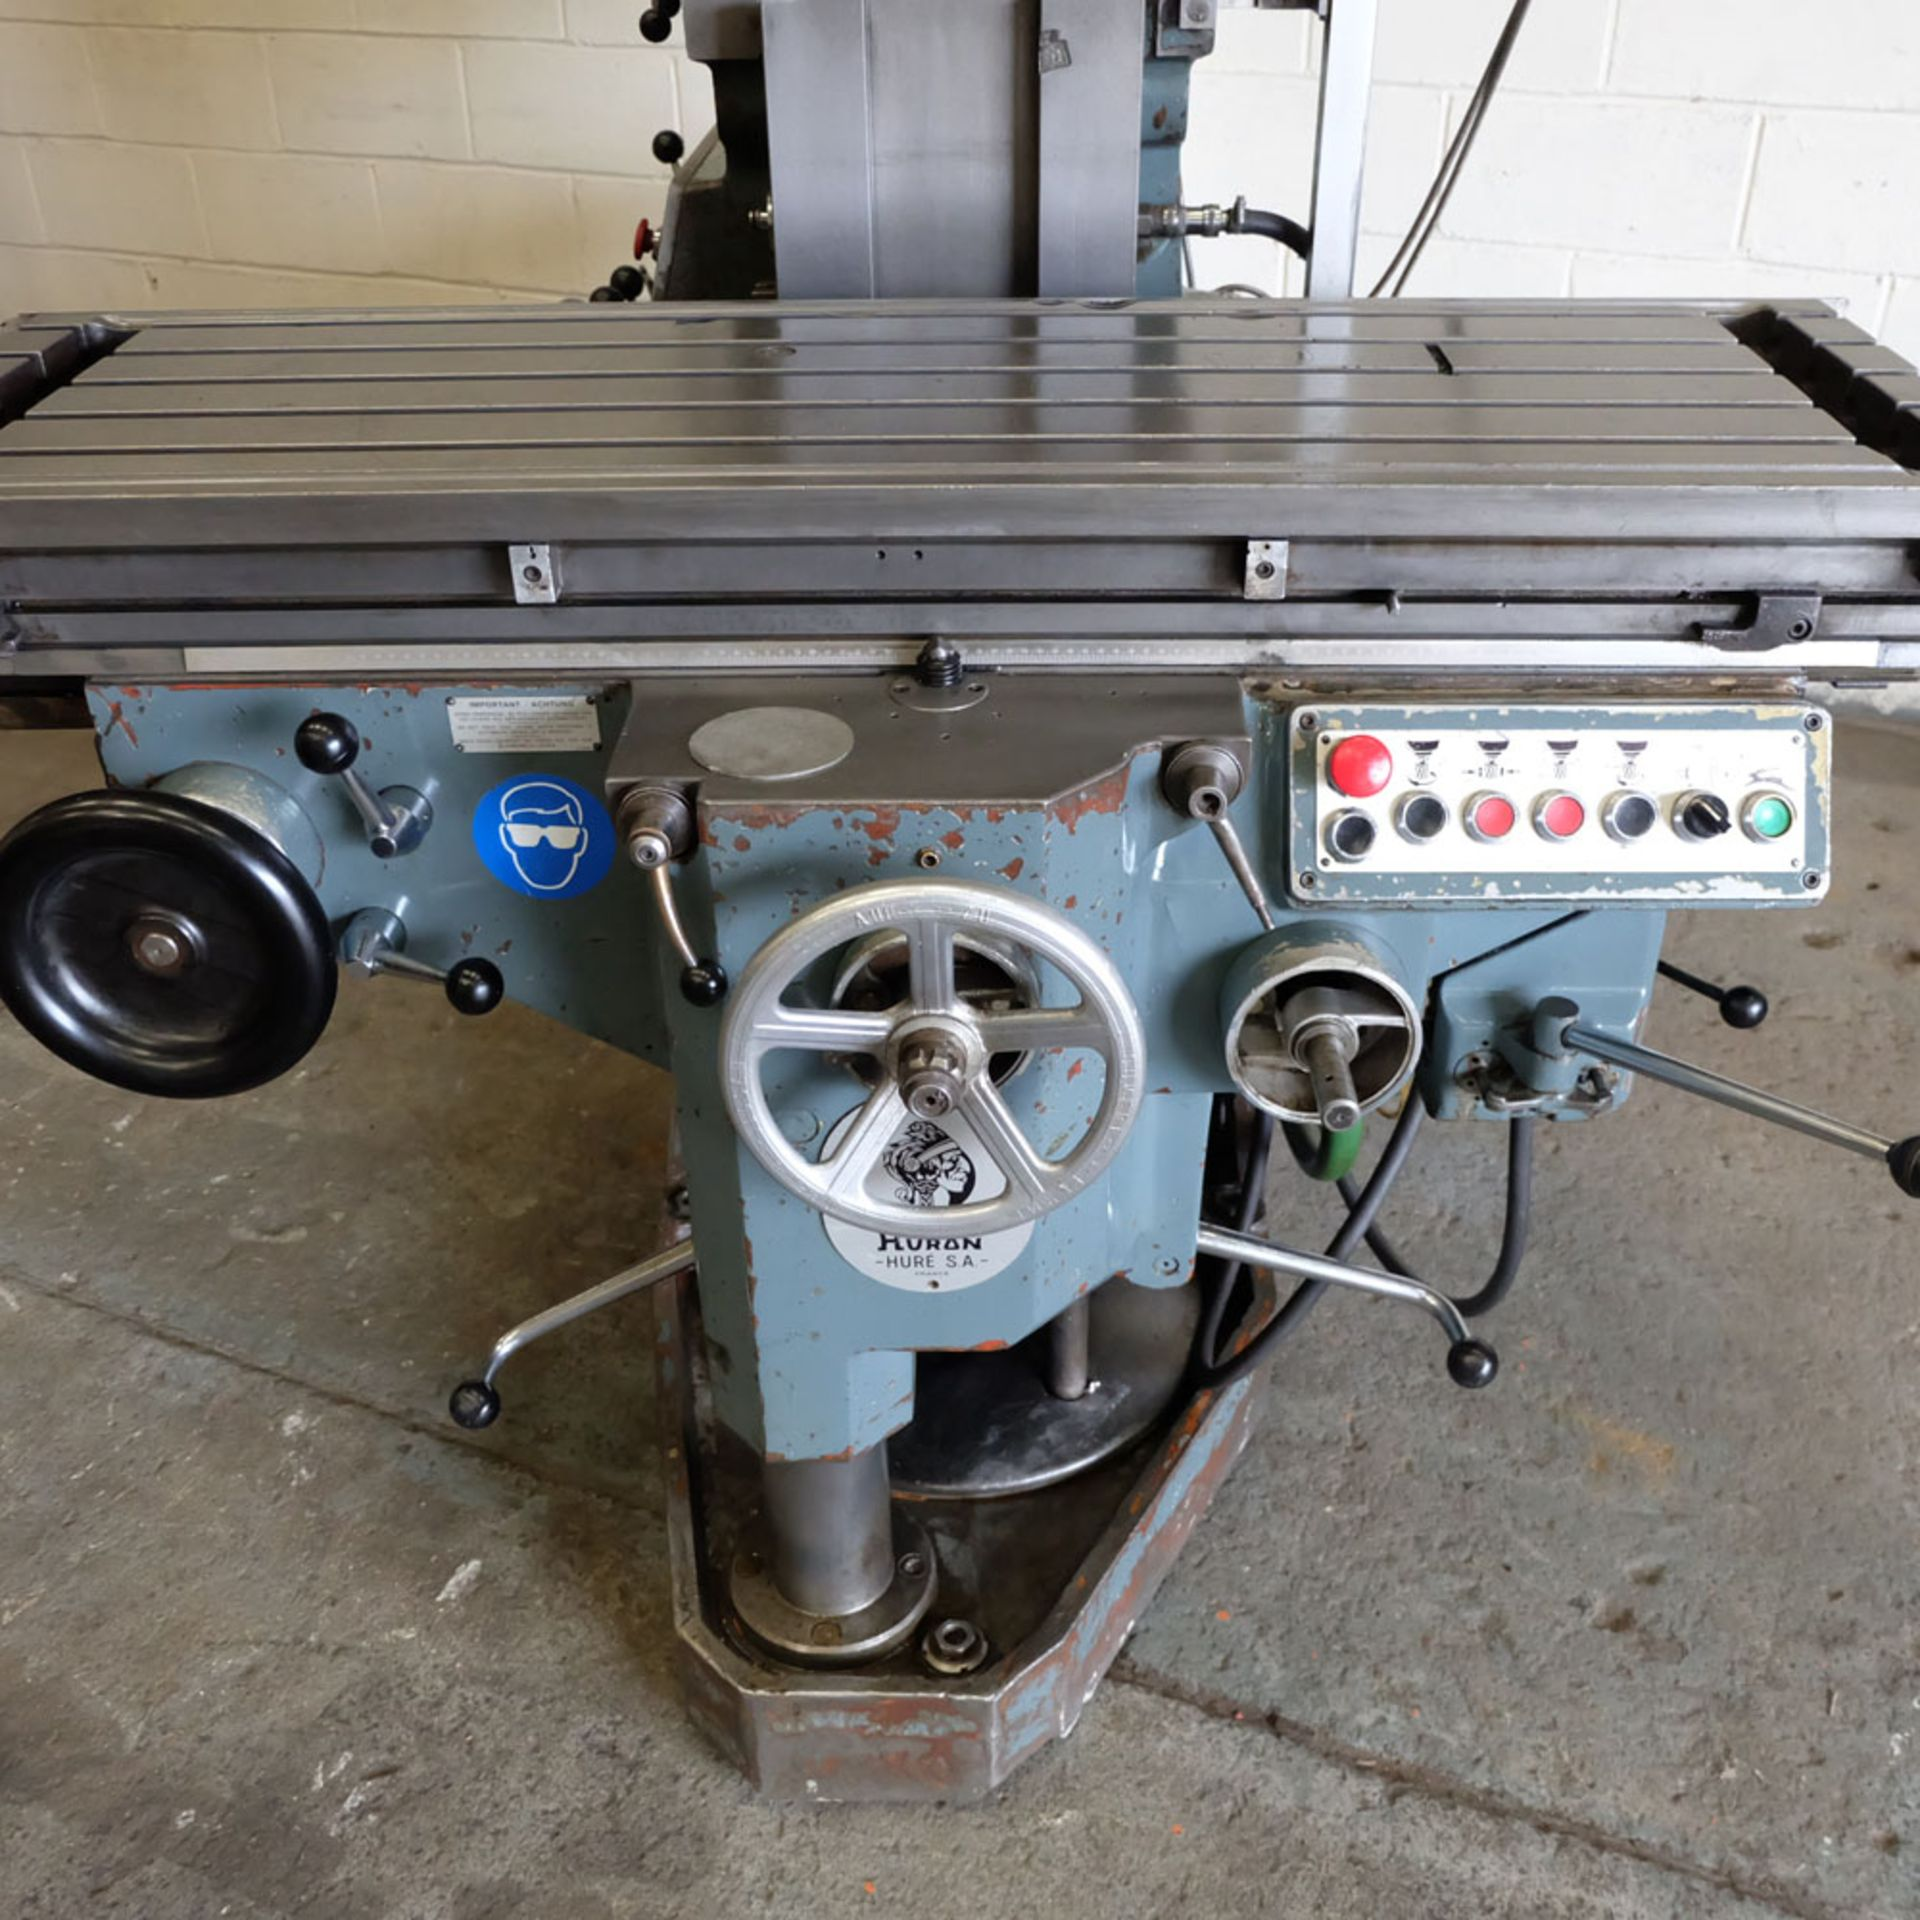 Huron NU4 Toolroom Universal Milling Machine. Table Size: 1435mm x 460mm. Taper: 50 ISO. 2 Axis DRO. - Image 3 of 6